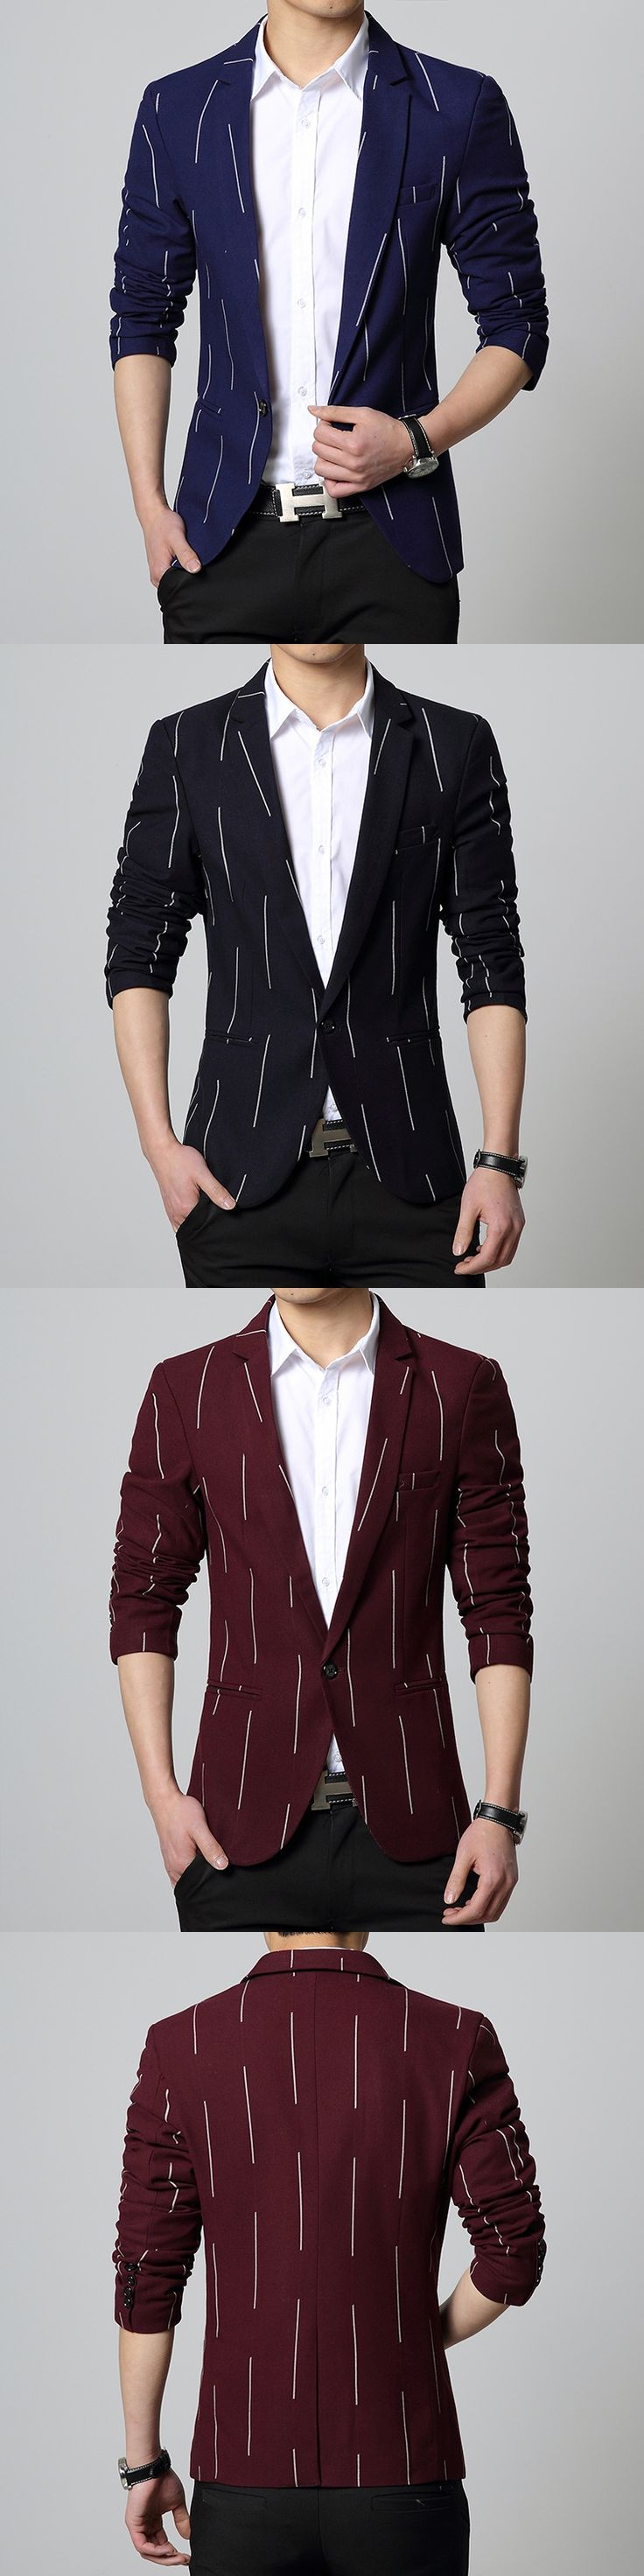 Mens casual blazer slim fit suit jacket red coat one button up blue Male clothing Spring new 2016 Korean fashion drop shipping